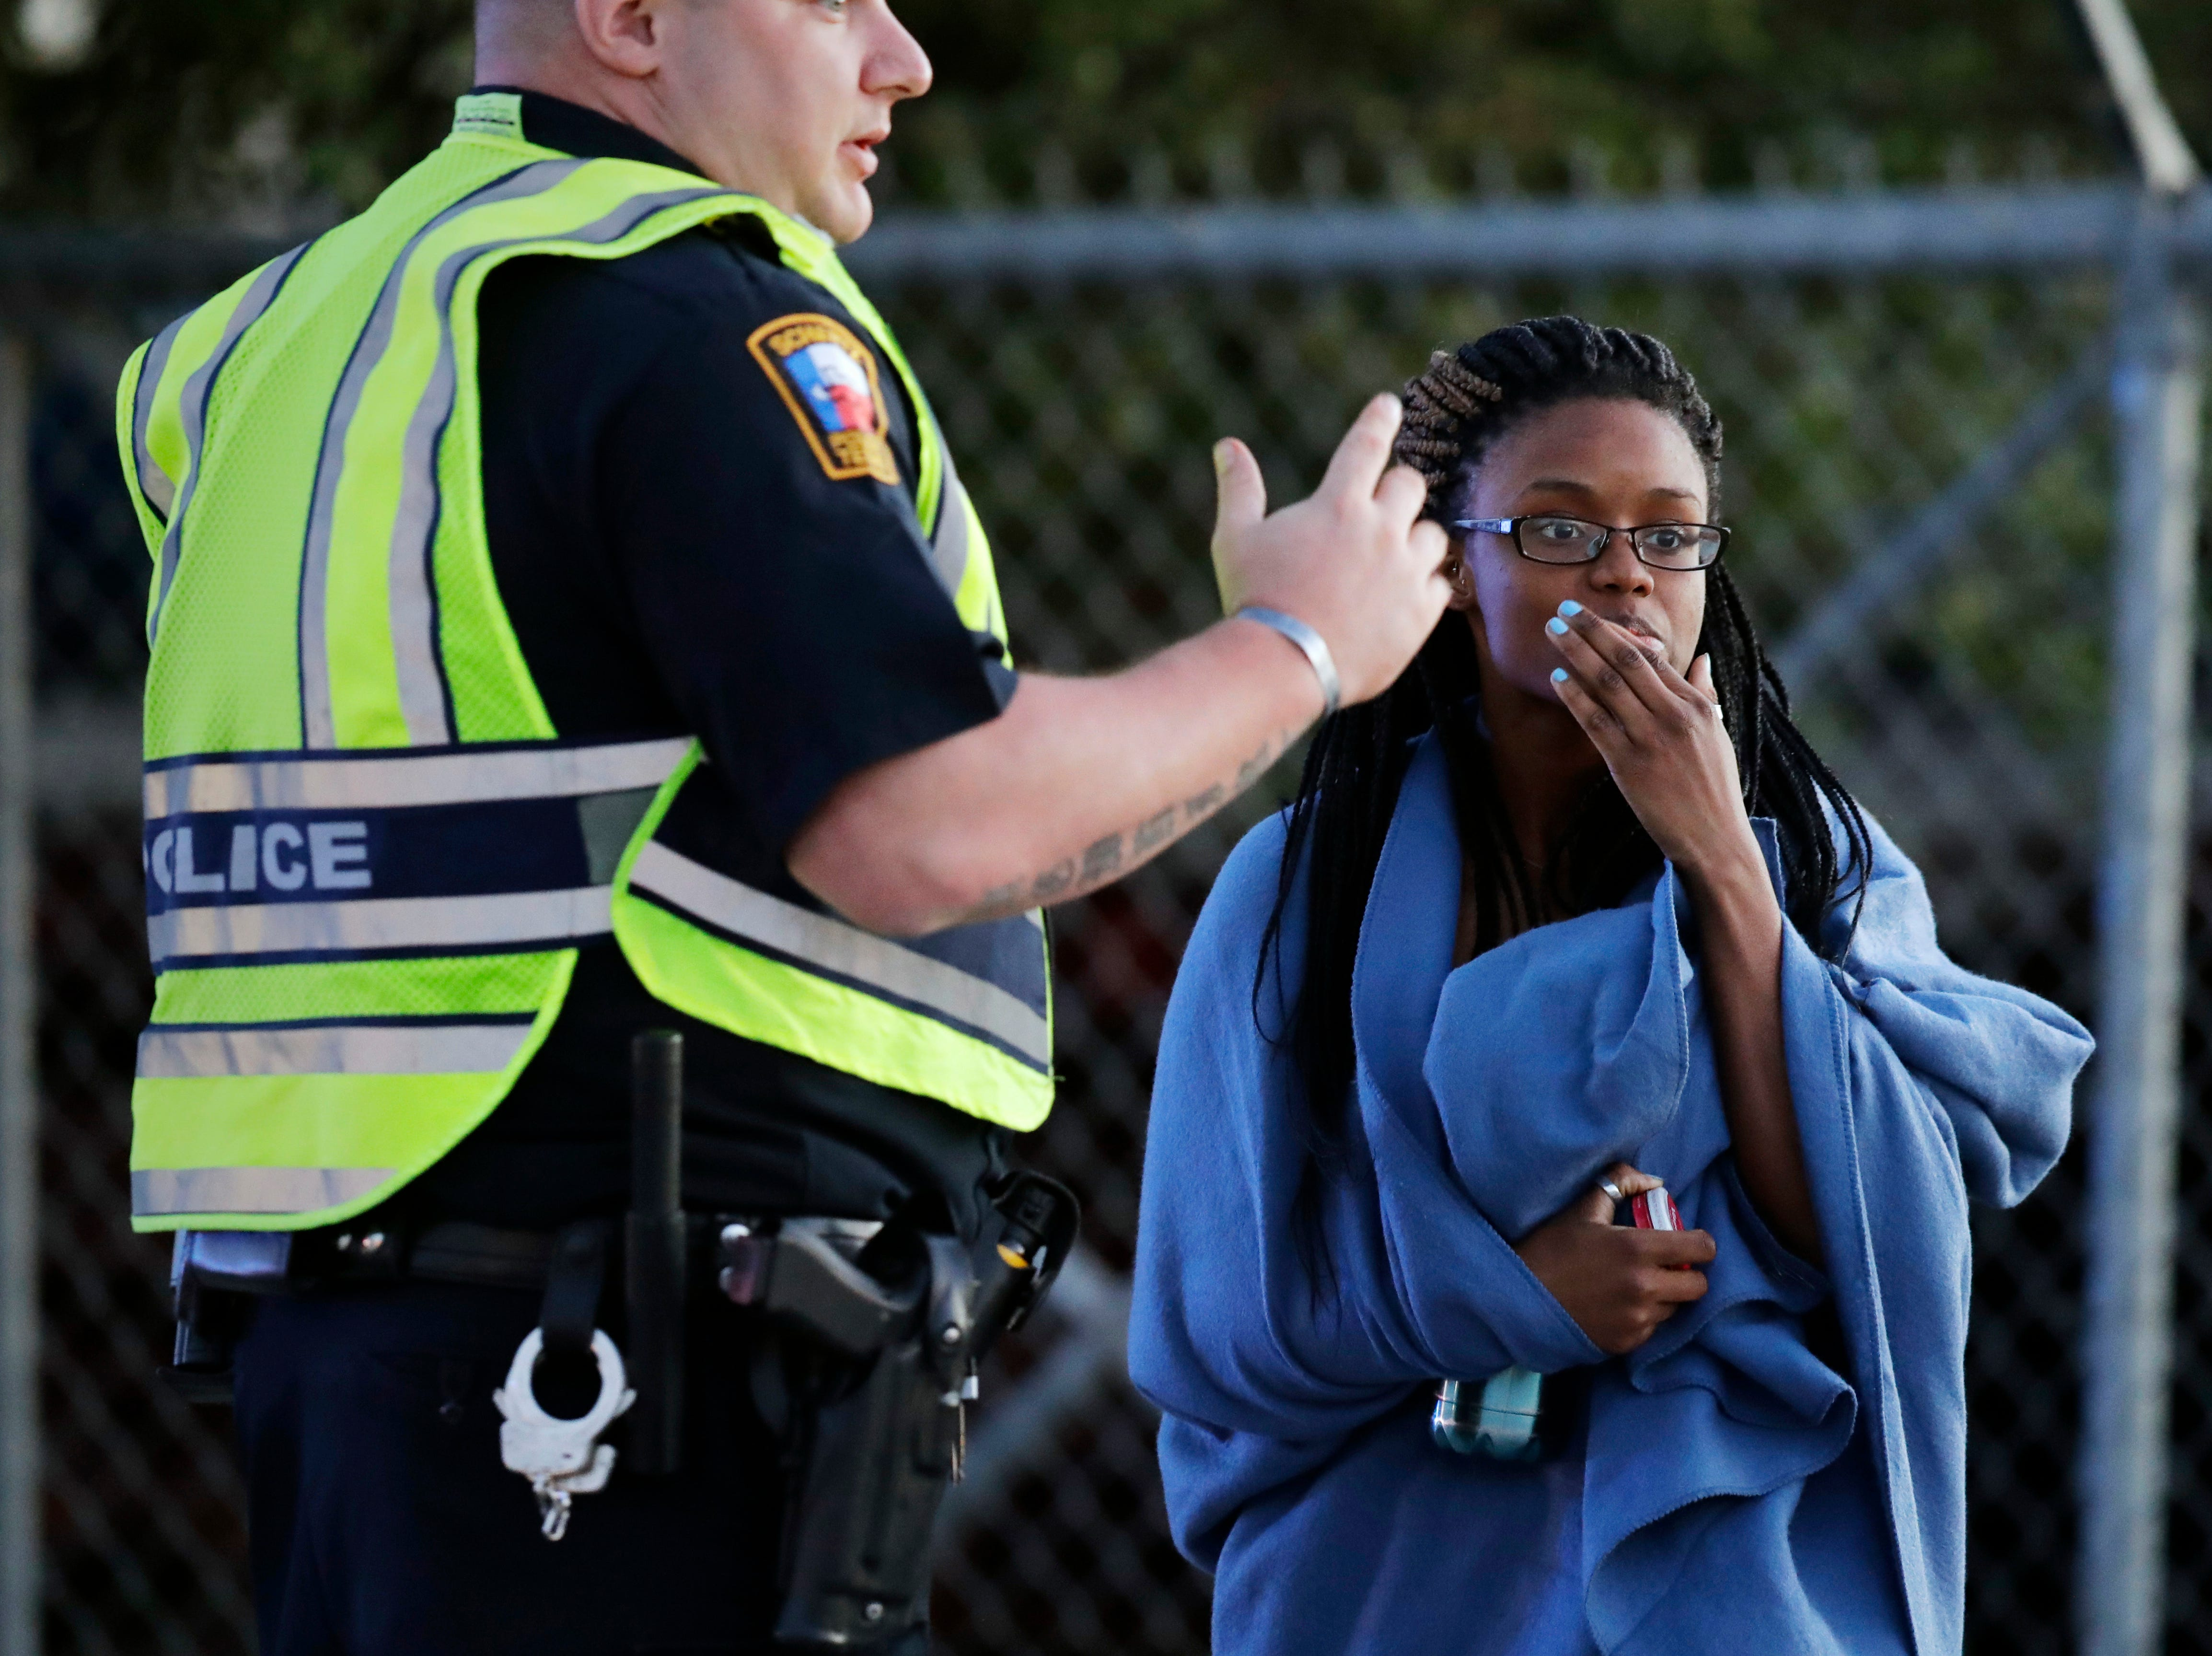 March 20, 2018: An employee wrapped in a blanket talks to a police officer after she was evacuated at a FedEx distribution center where a package exploded in Schertz, Texas. Authorities believe the package bomb is linked to the recent string of Austin bombings.